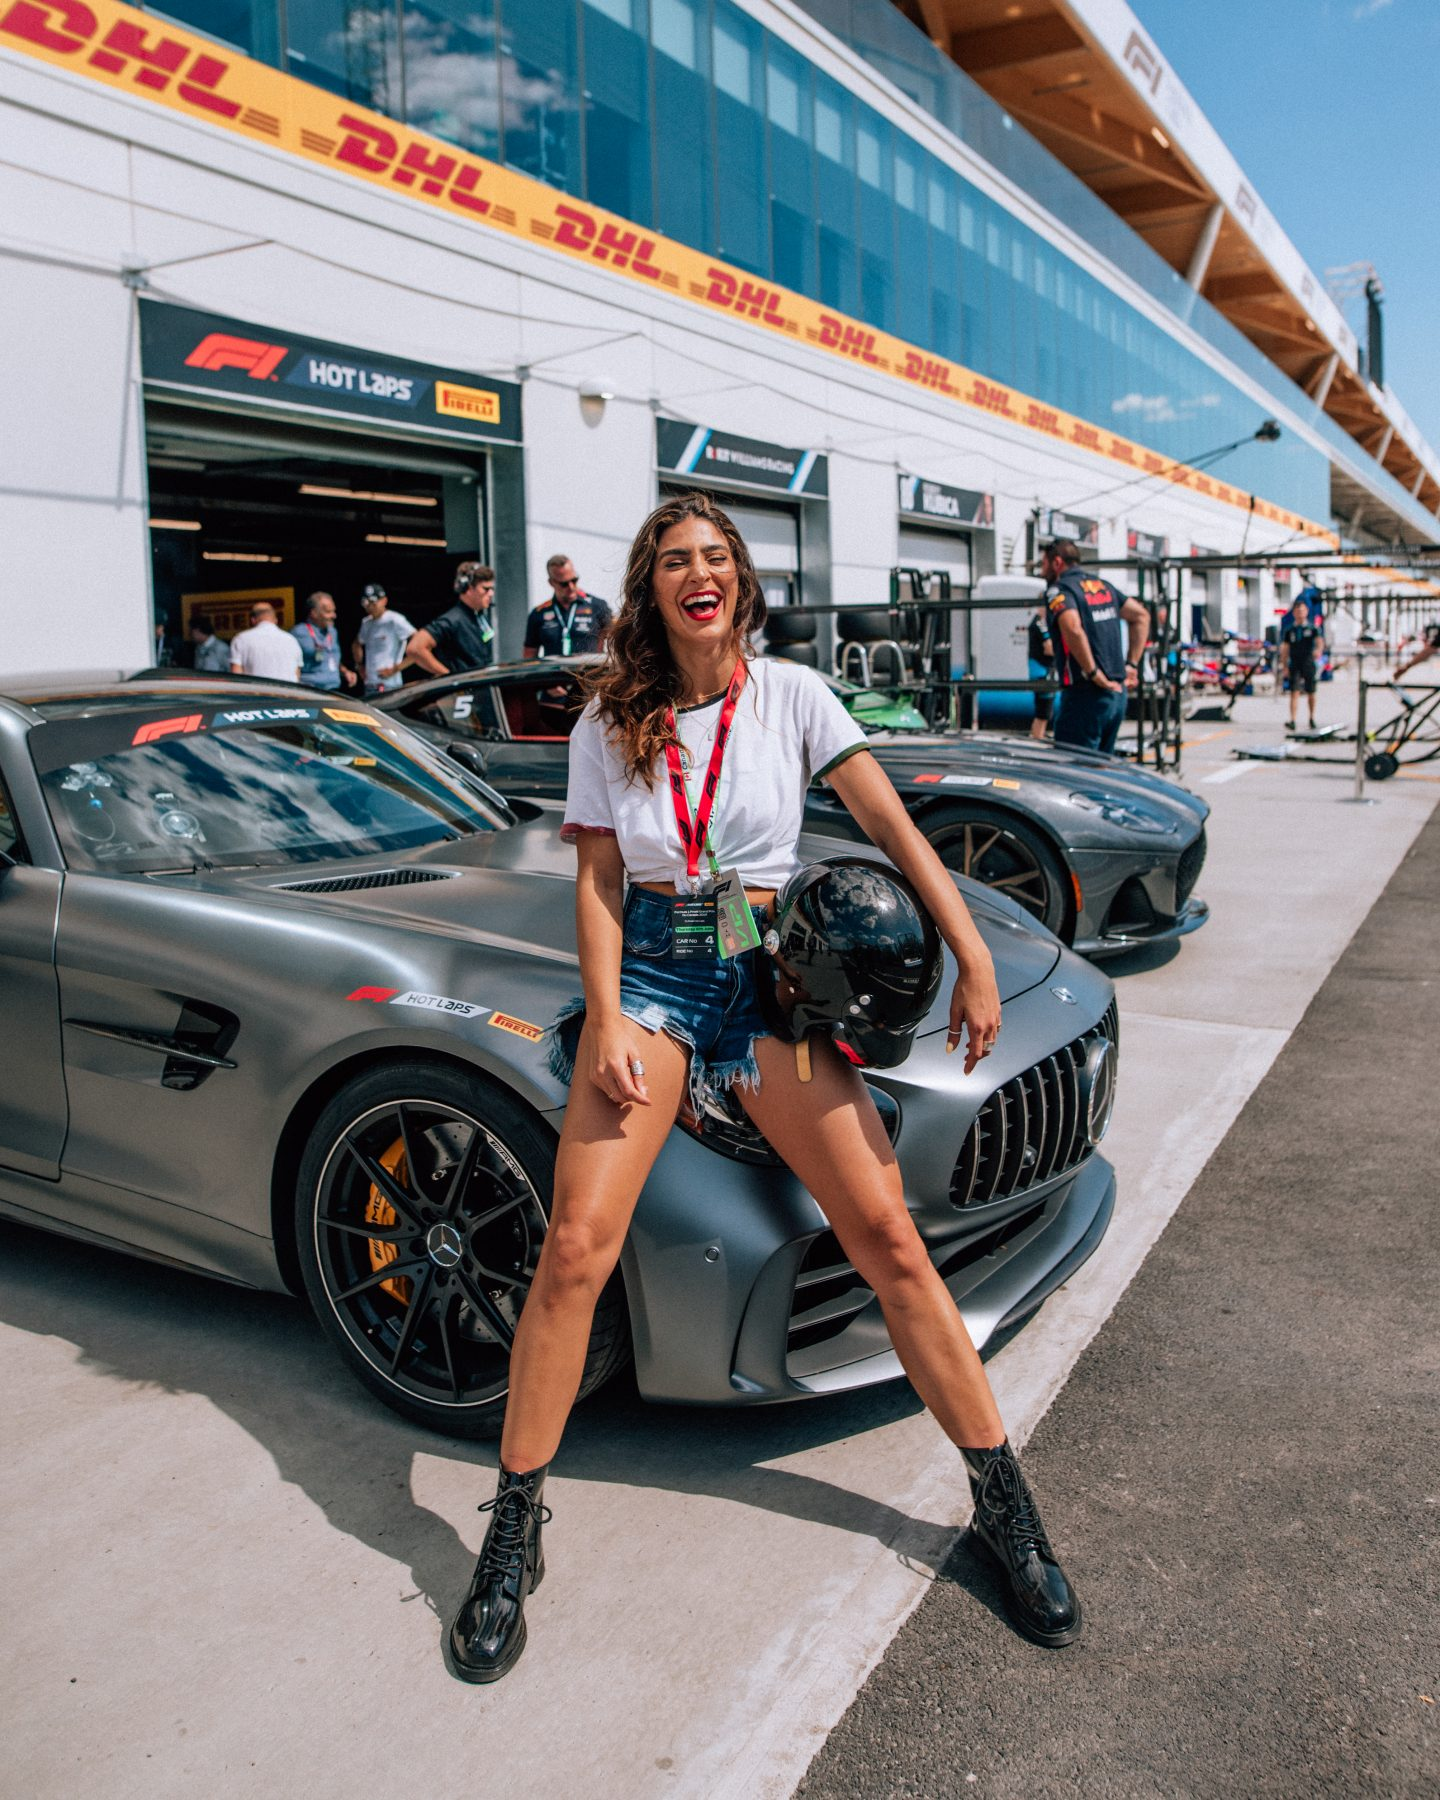 Lisa Homsy working with F1 racing on an Instagram brand collaboration at Montreal Grand Prix